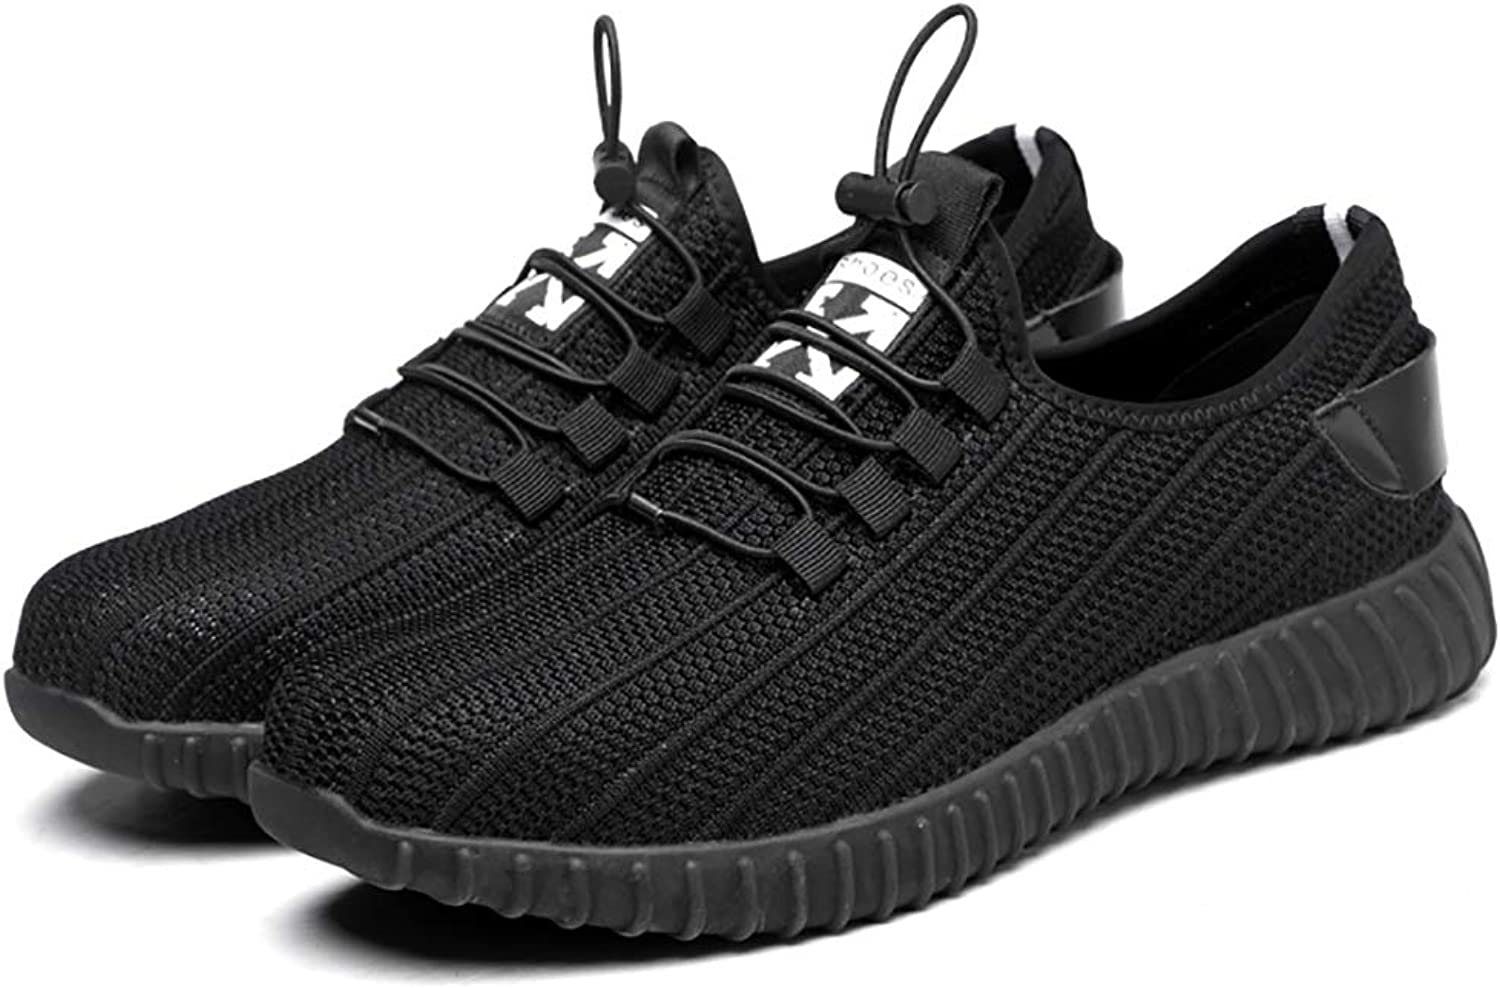 ZYFXZ Work shoes Work shoes work shoes light and comfortable men's casual shoes outdoor non-slip shoes anti-mite puncture rubber soles predective shoes flying woven shoes breathable wear safety shoes